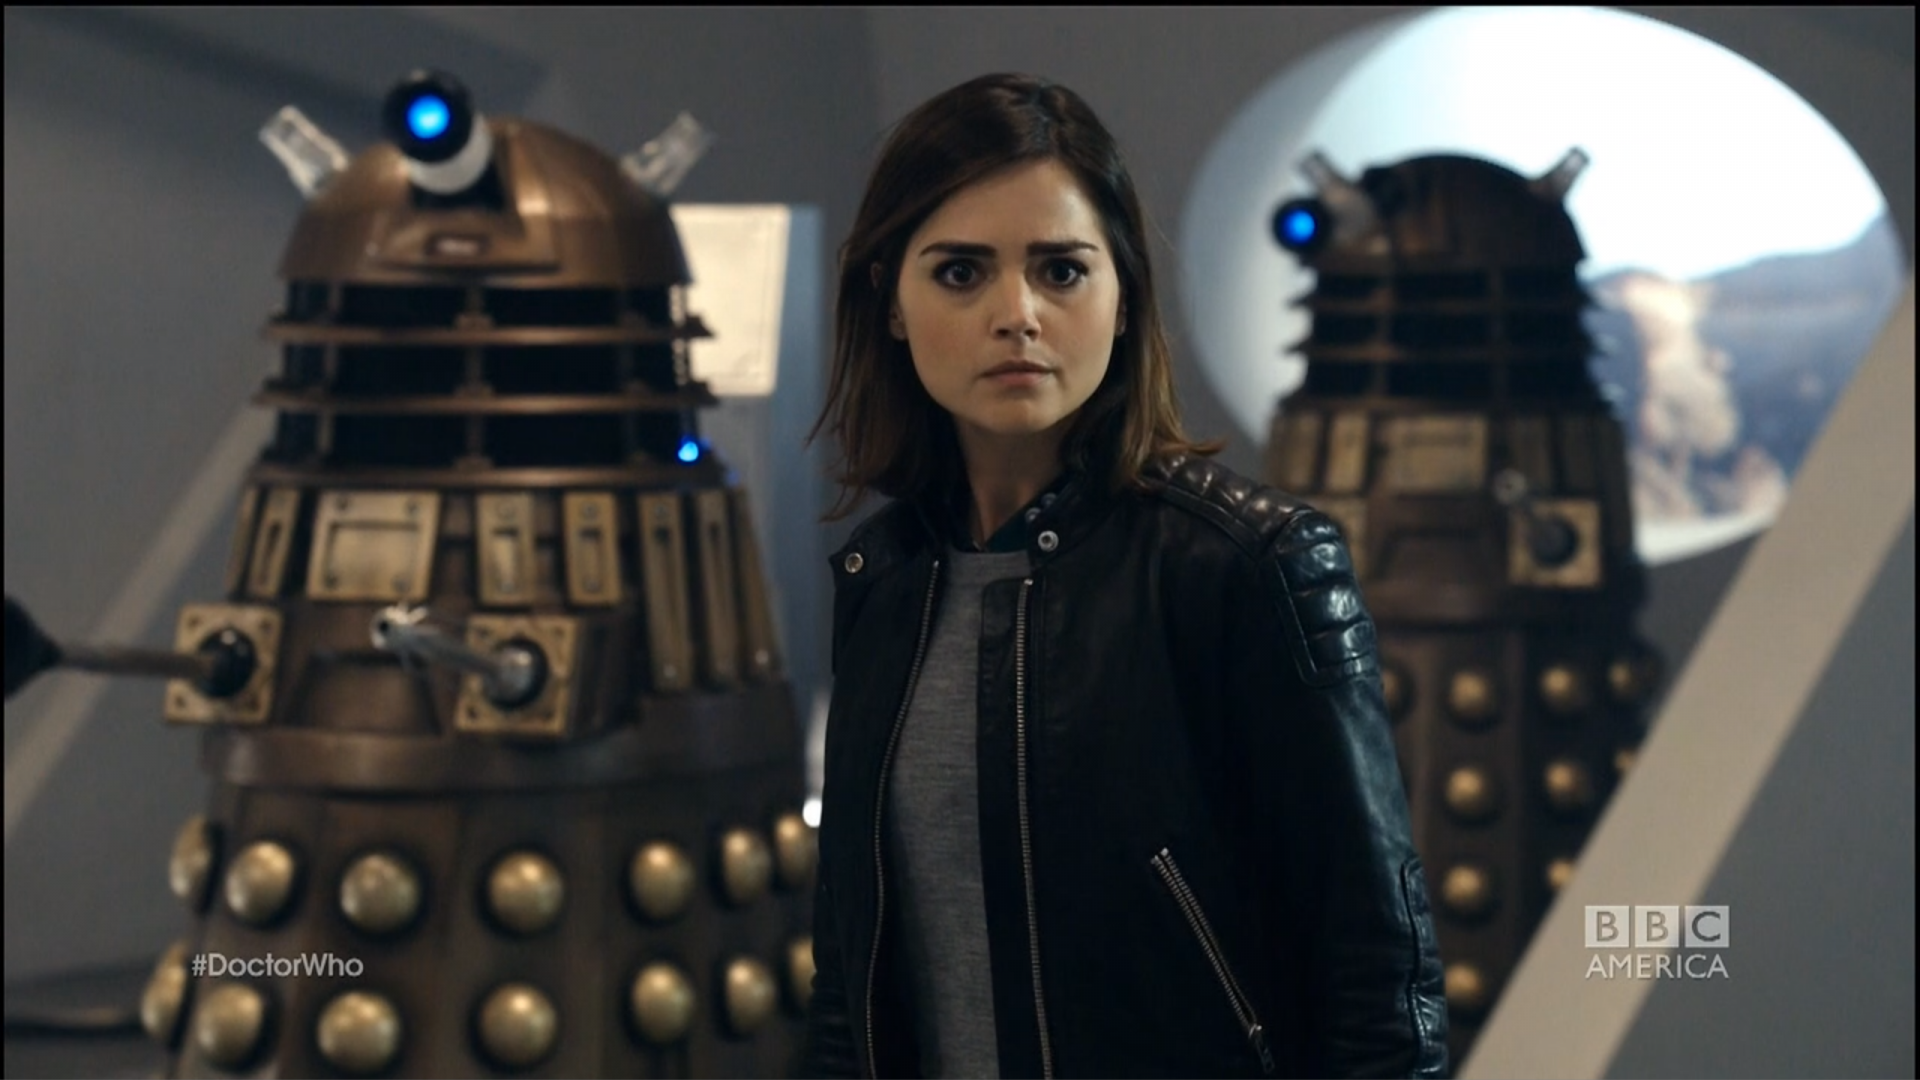 Free Download Jenna Coleman Doctor Who Wallpaper Doctor Who Season